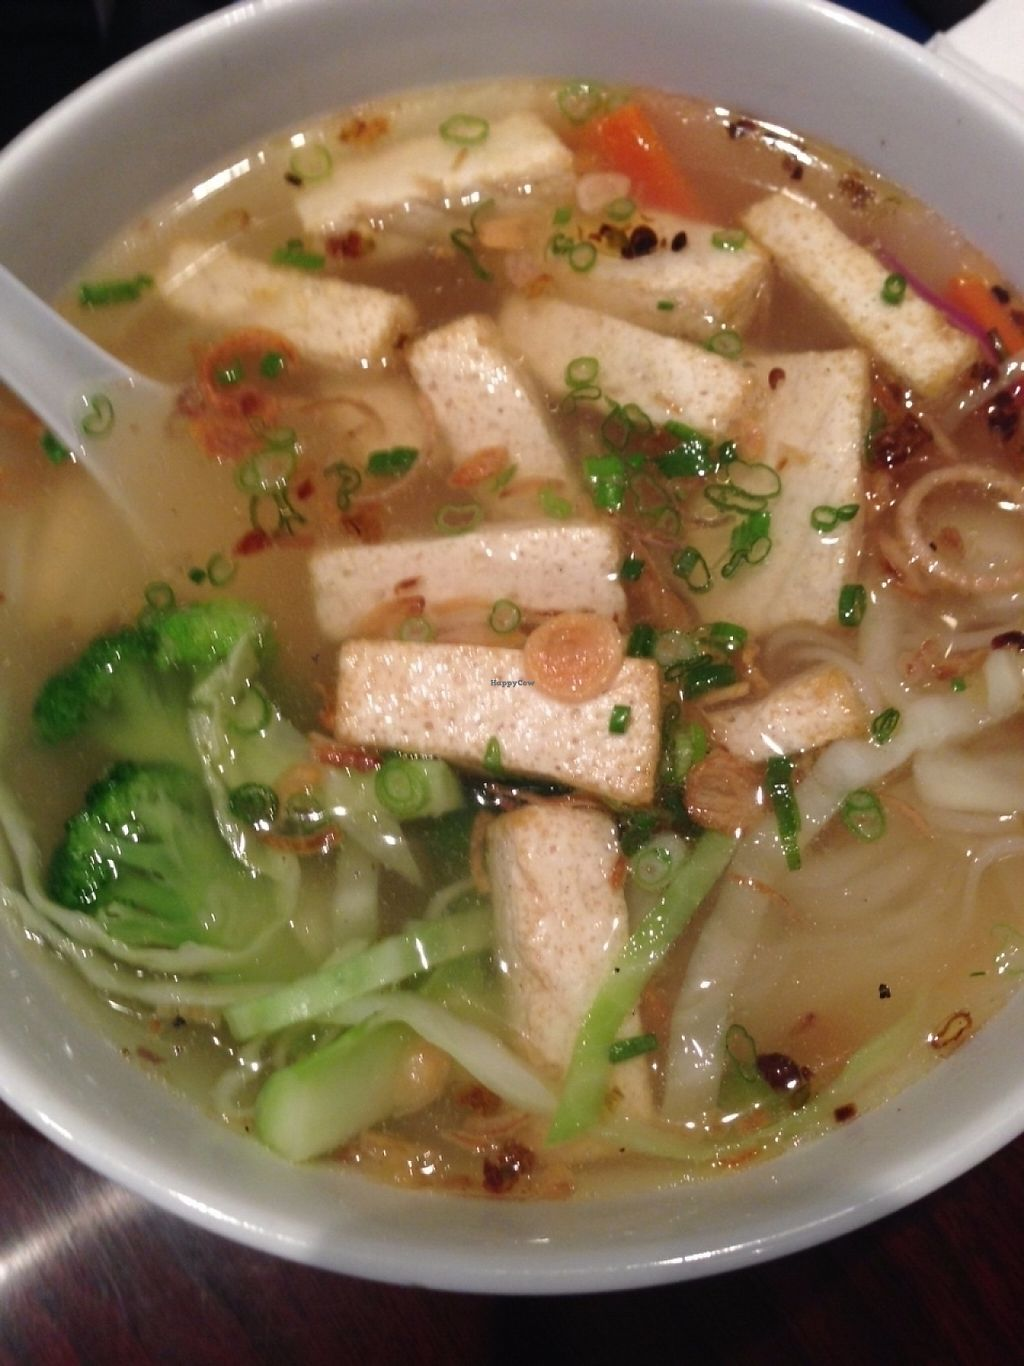 """Photo of Huong Viet  by <a href=""""/members/profile/CarlaGolden"""">CarlaGolden</a> <br/>Vegan Pho <br/> June 7, 2016  - <a href='/contact/abuse/image/74431/224030'>Report</a>"""